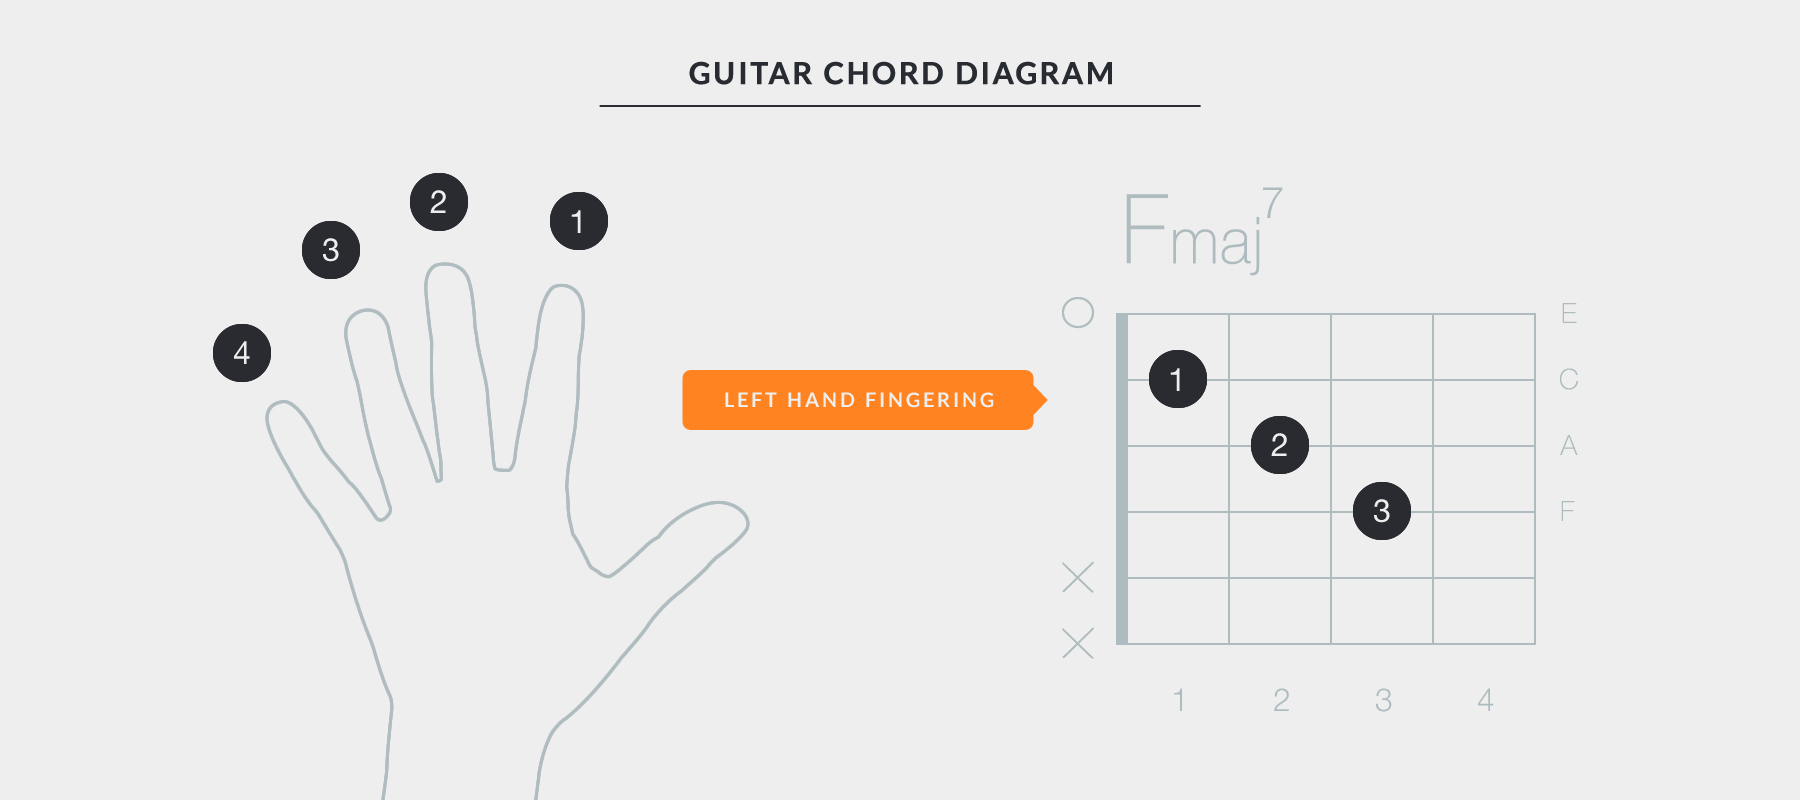 Guitar Chords For Beginners 10 Tips How To Play The Guitar With Good Technique